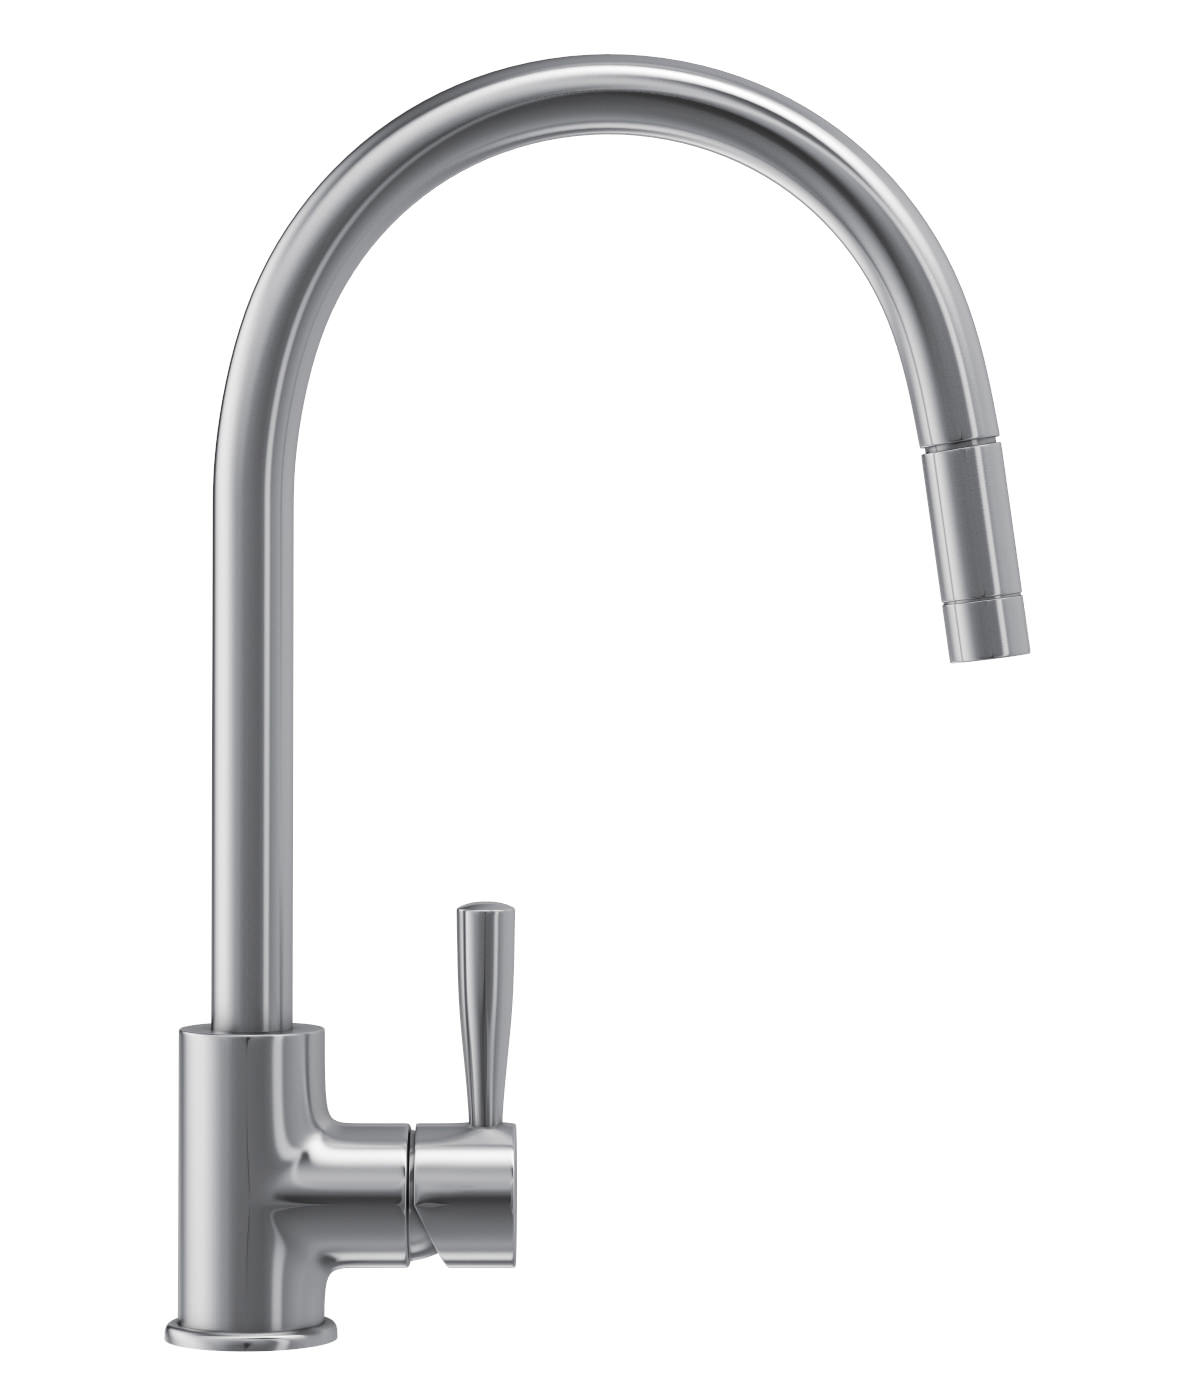 Pull Out Sink Mixer Franke Fuji Pull Out Nozzle Kitchen Sink Mixer Tap